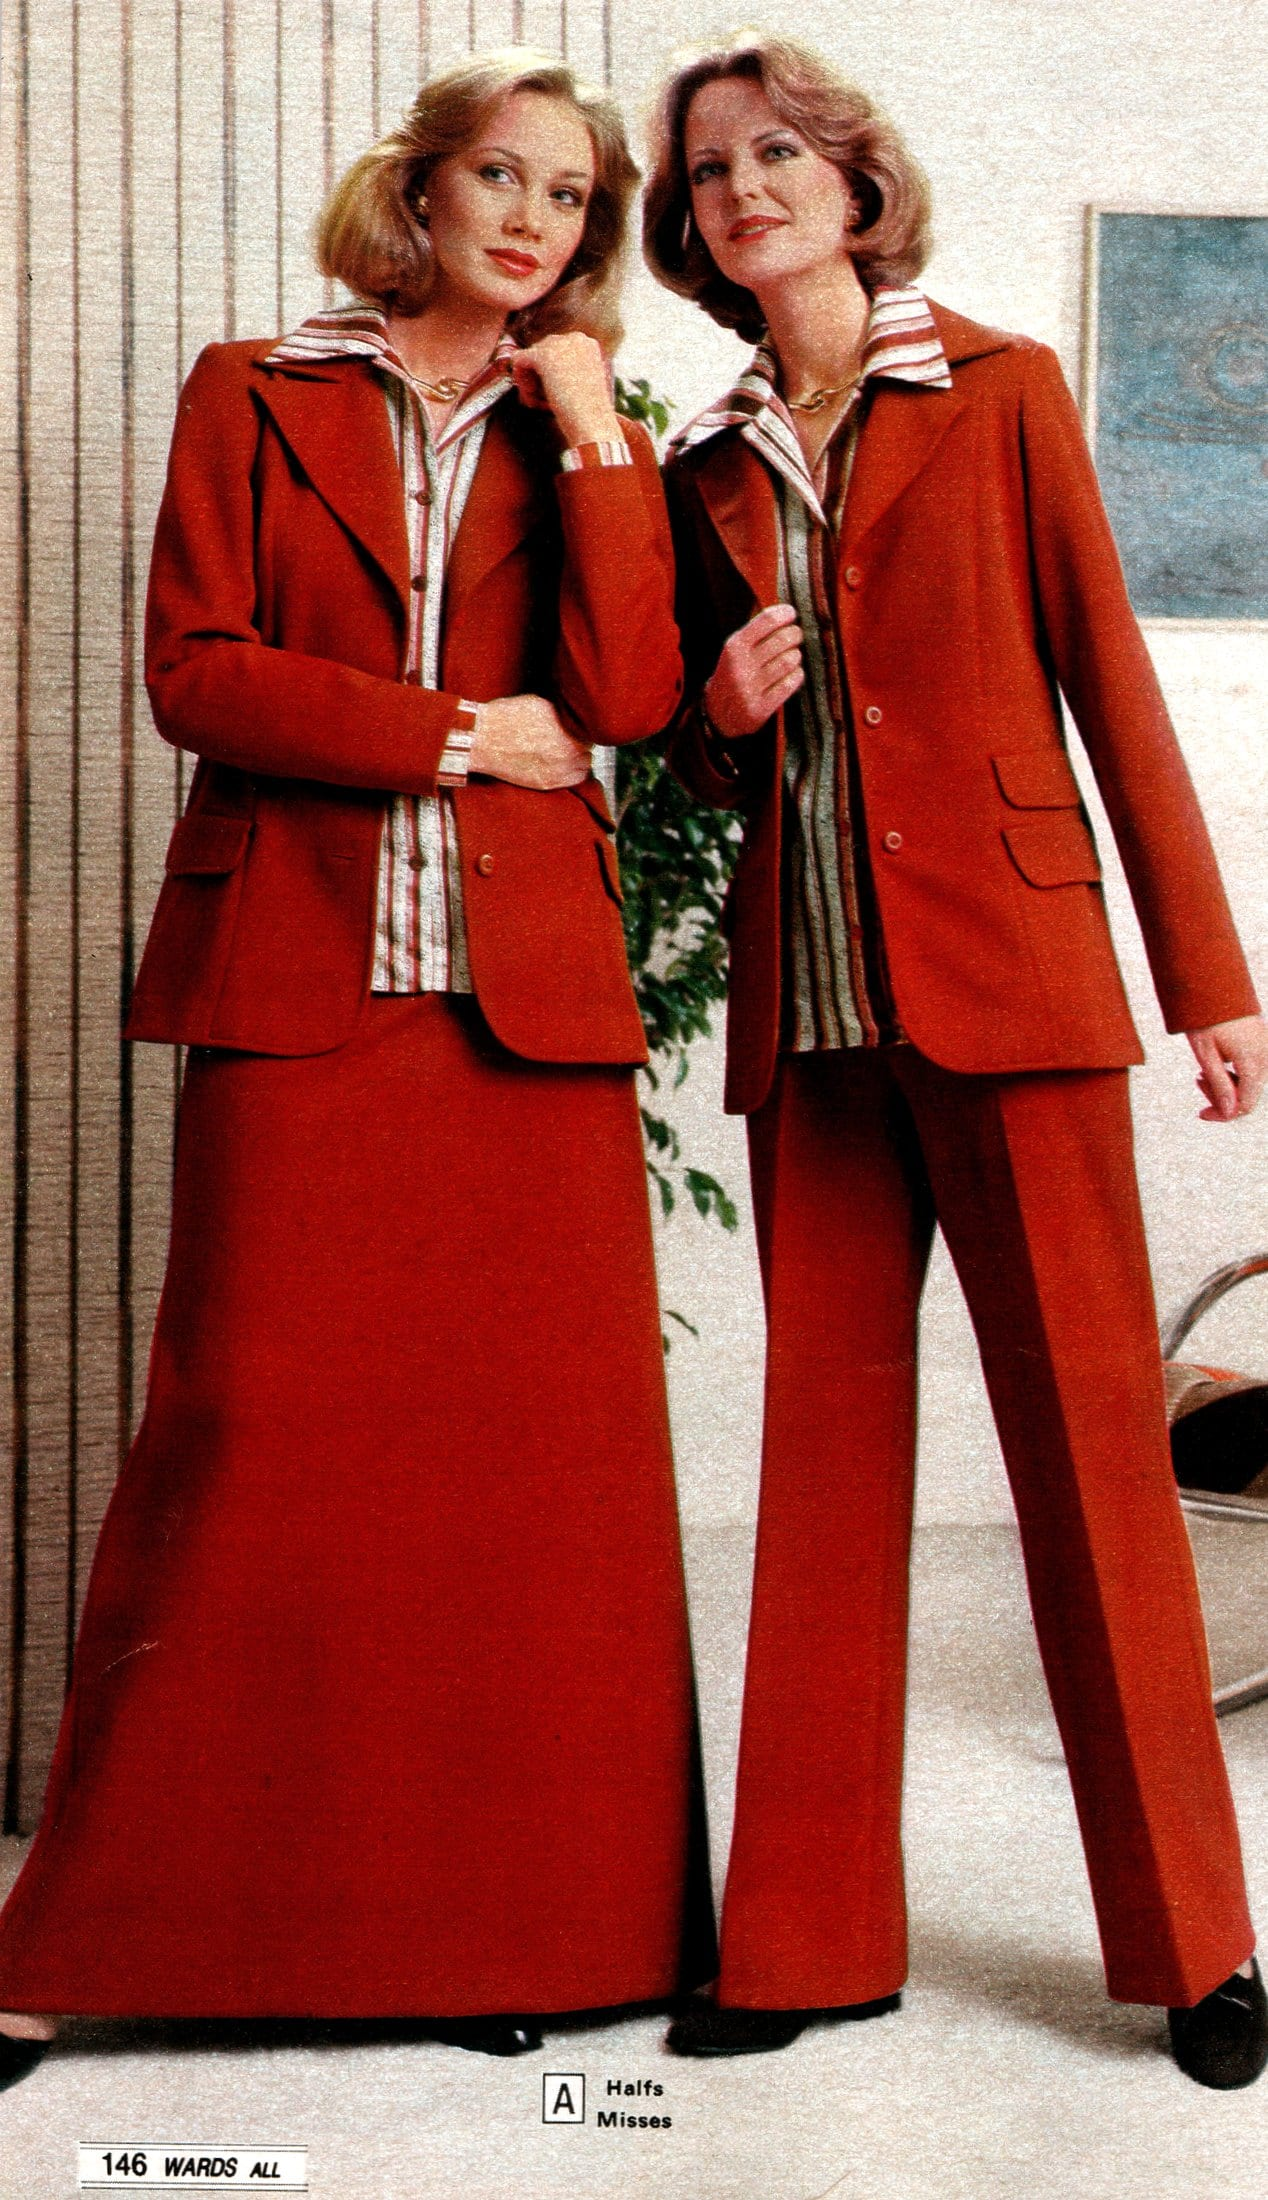 Retro casual red suits for women (1979)